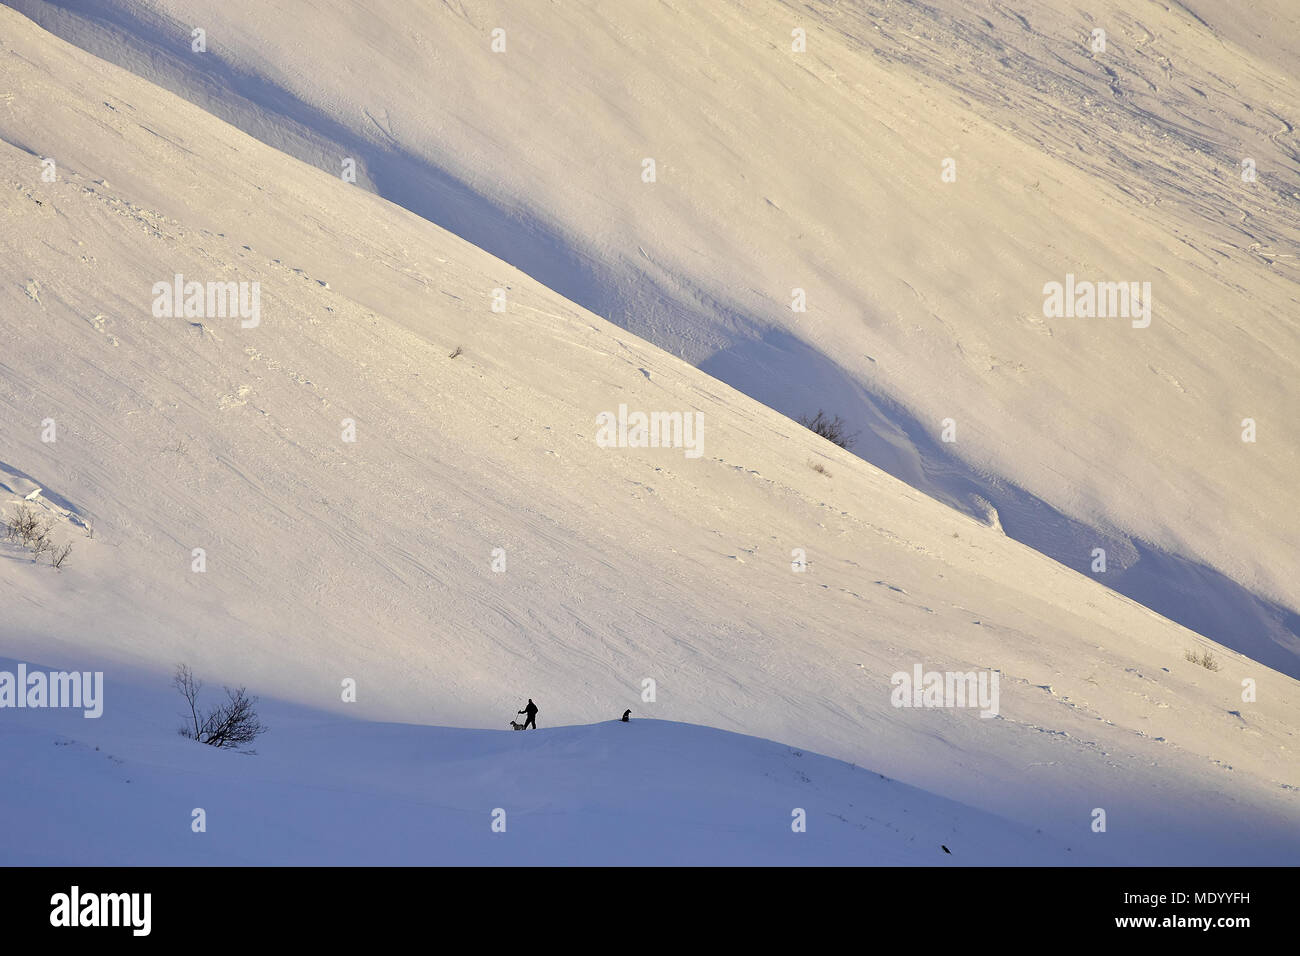 A snowshoer makes his way along the fresh powder in Hatcher Pass, Alaska, with his dogs. - Stock Image